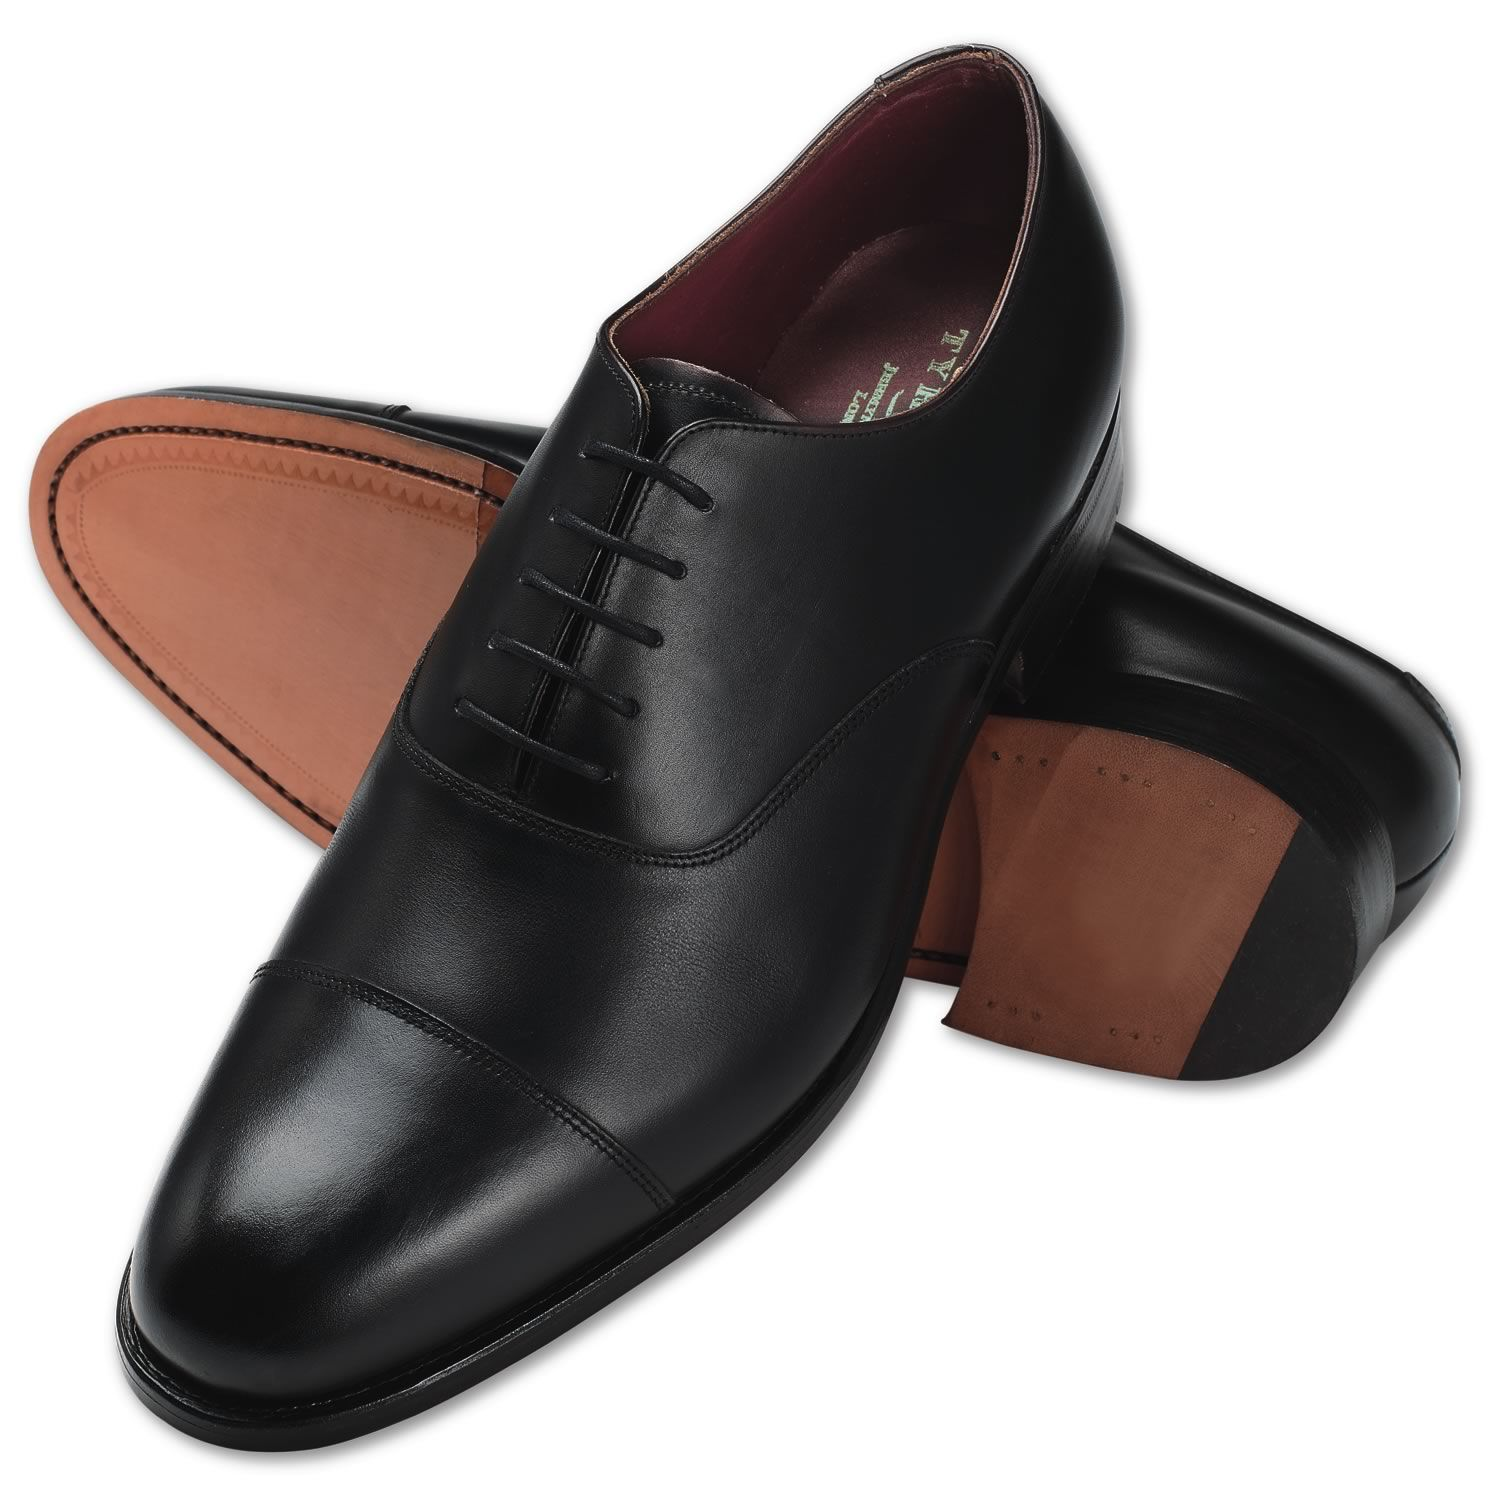 I have two pairs... They are really good!  Black calf leather Oxford shoes from Charles Tyrwhitt, Jermyn Street, London  Made in Northampton, England